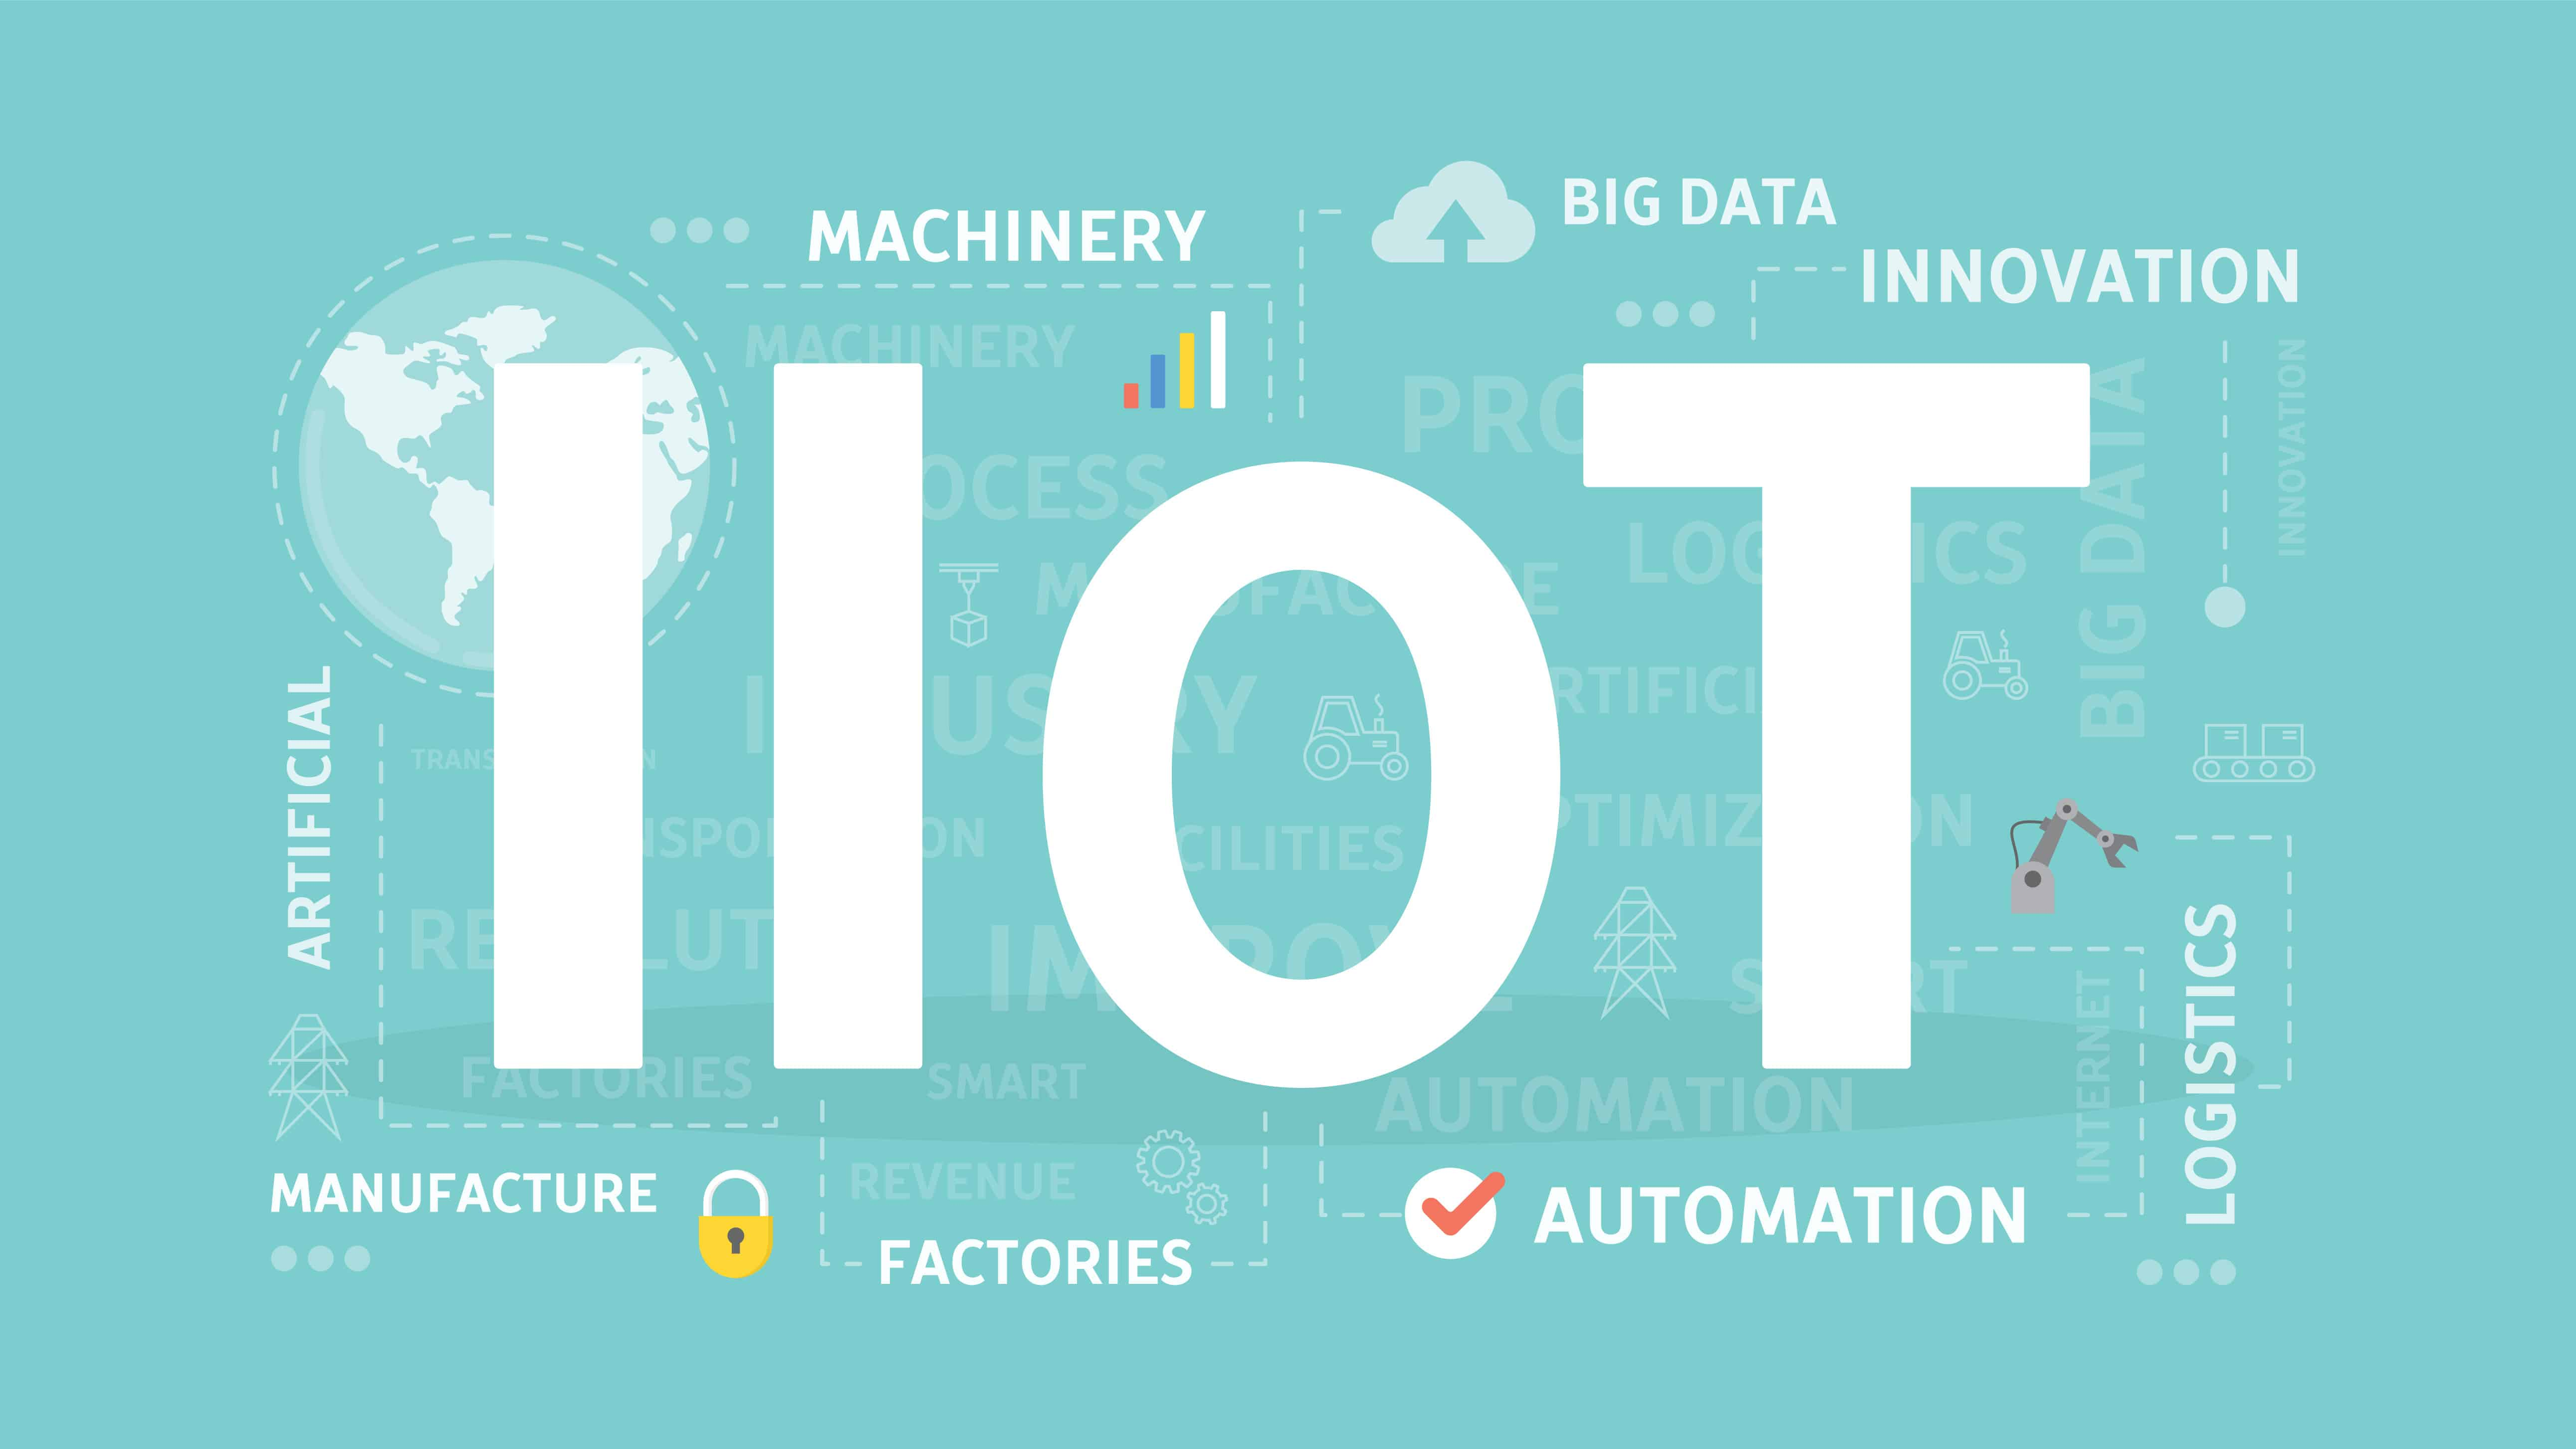 The Industrial Internet of Things and 5G